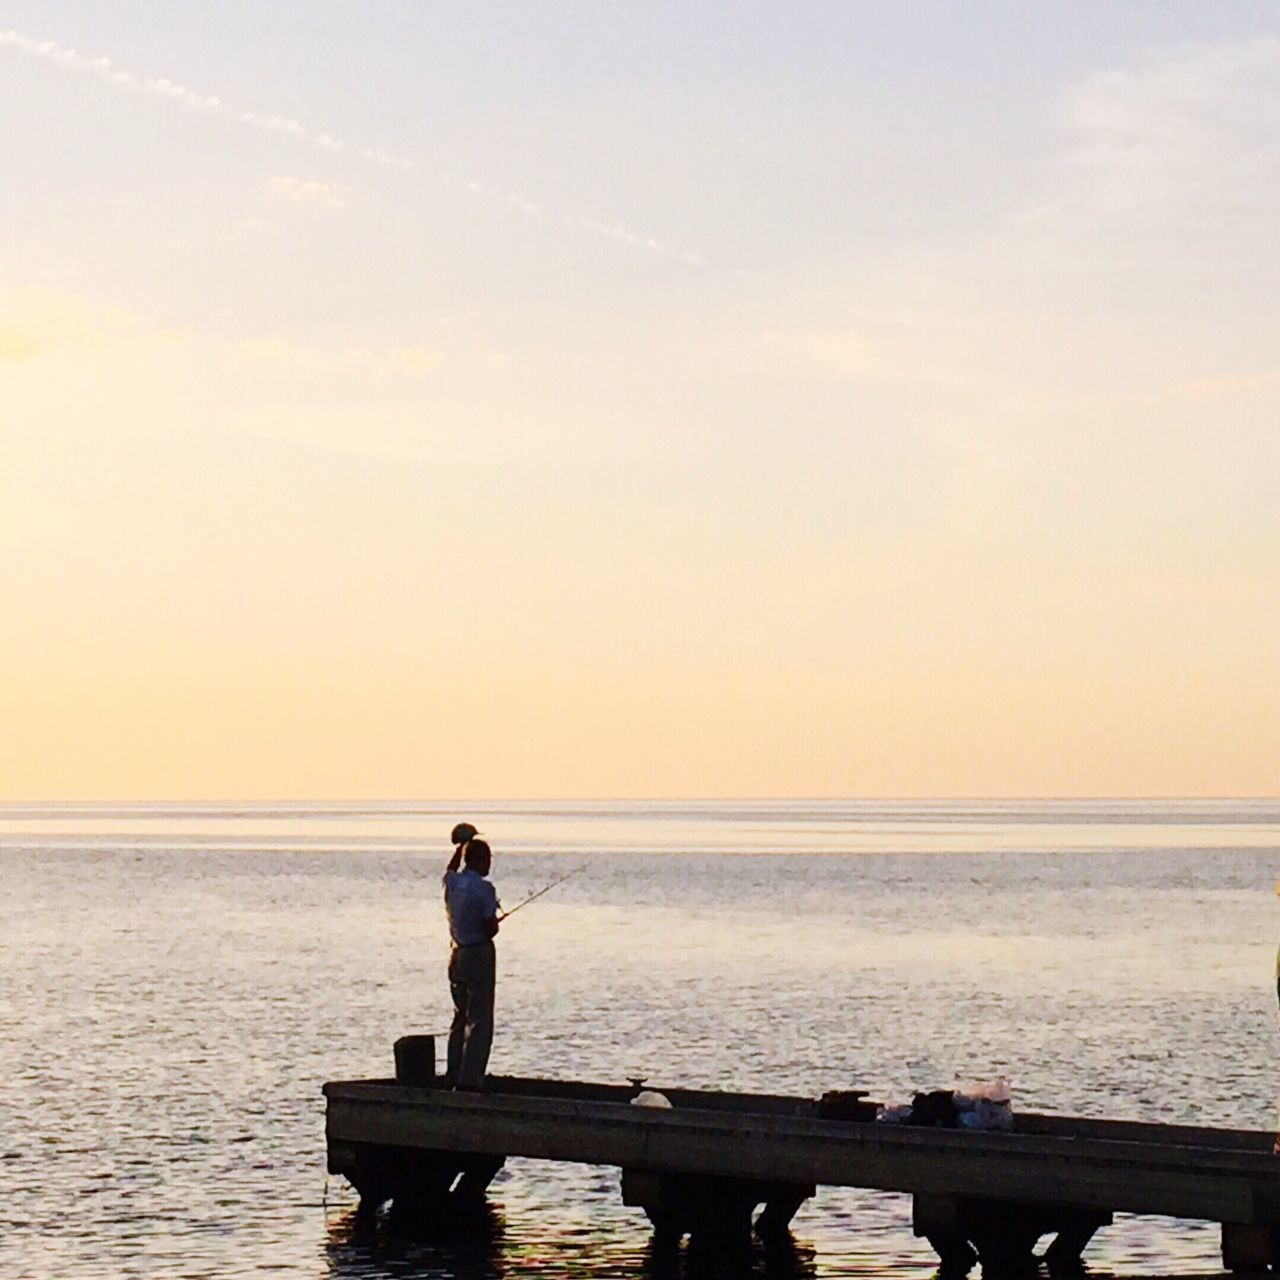 Horizon Over Water Sea Real People Full Length Water Sky Sea And Sky Seascape Leisure Activity Fishing Man Sunset Beauty In Nature Nature Relaxation Idyllic Clear Sky Tranquil Scene Outdoors Scenics Waterfront Getting Away From It All Silhouette